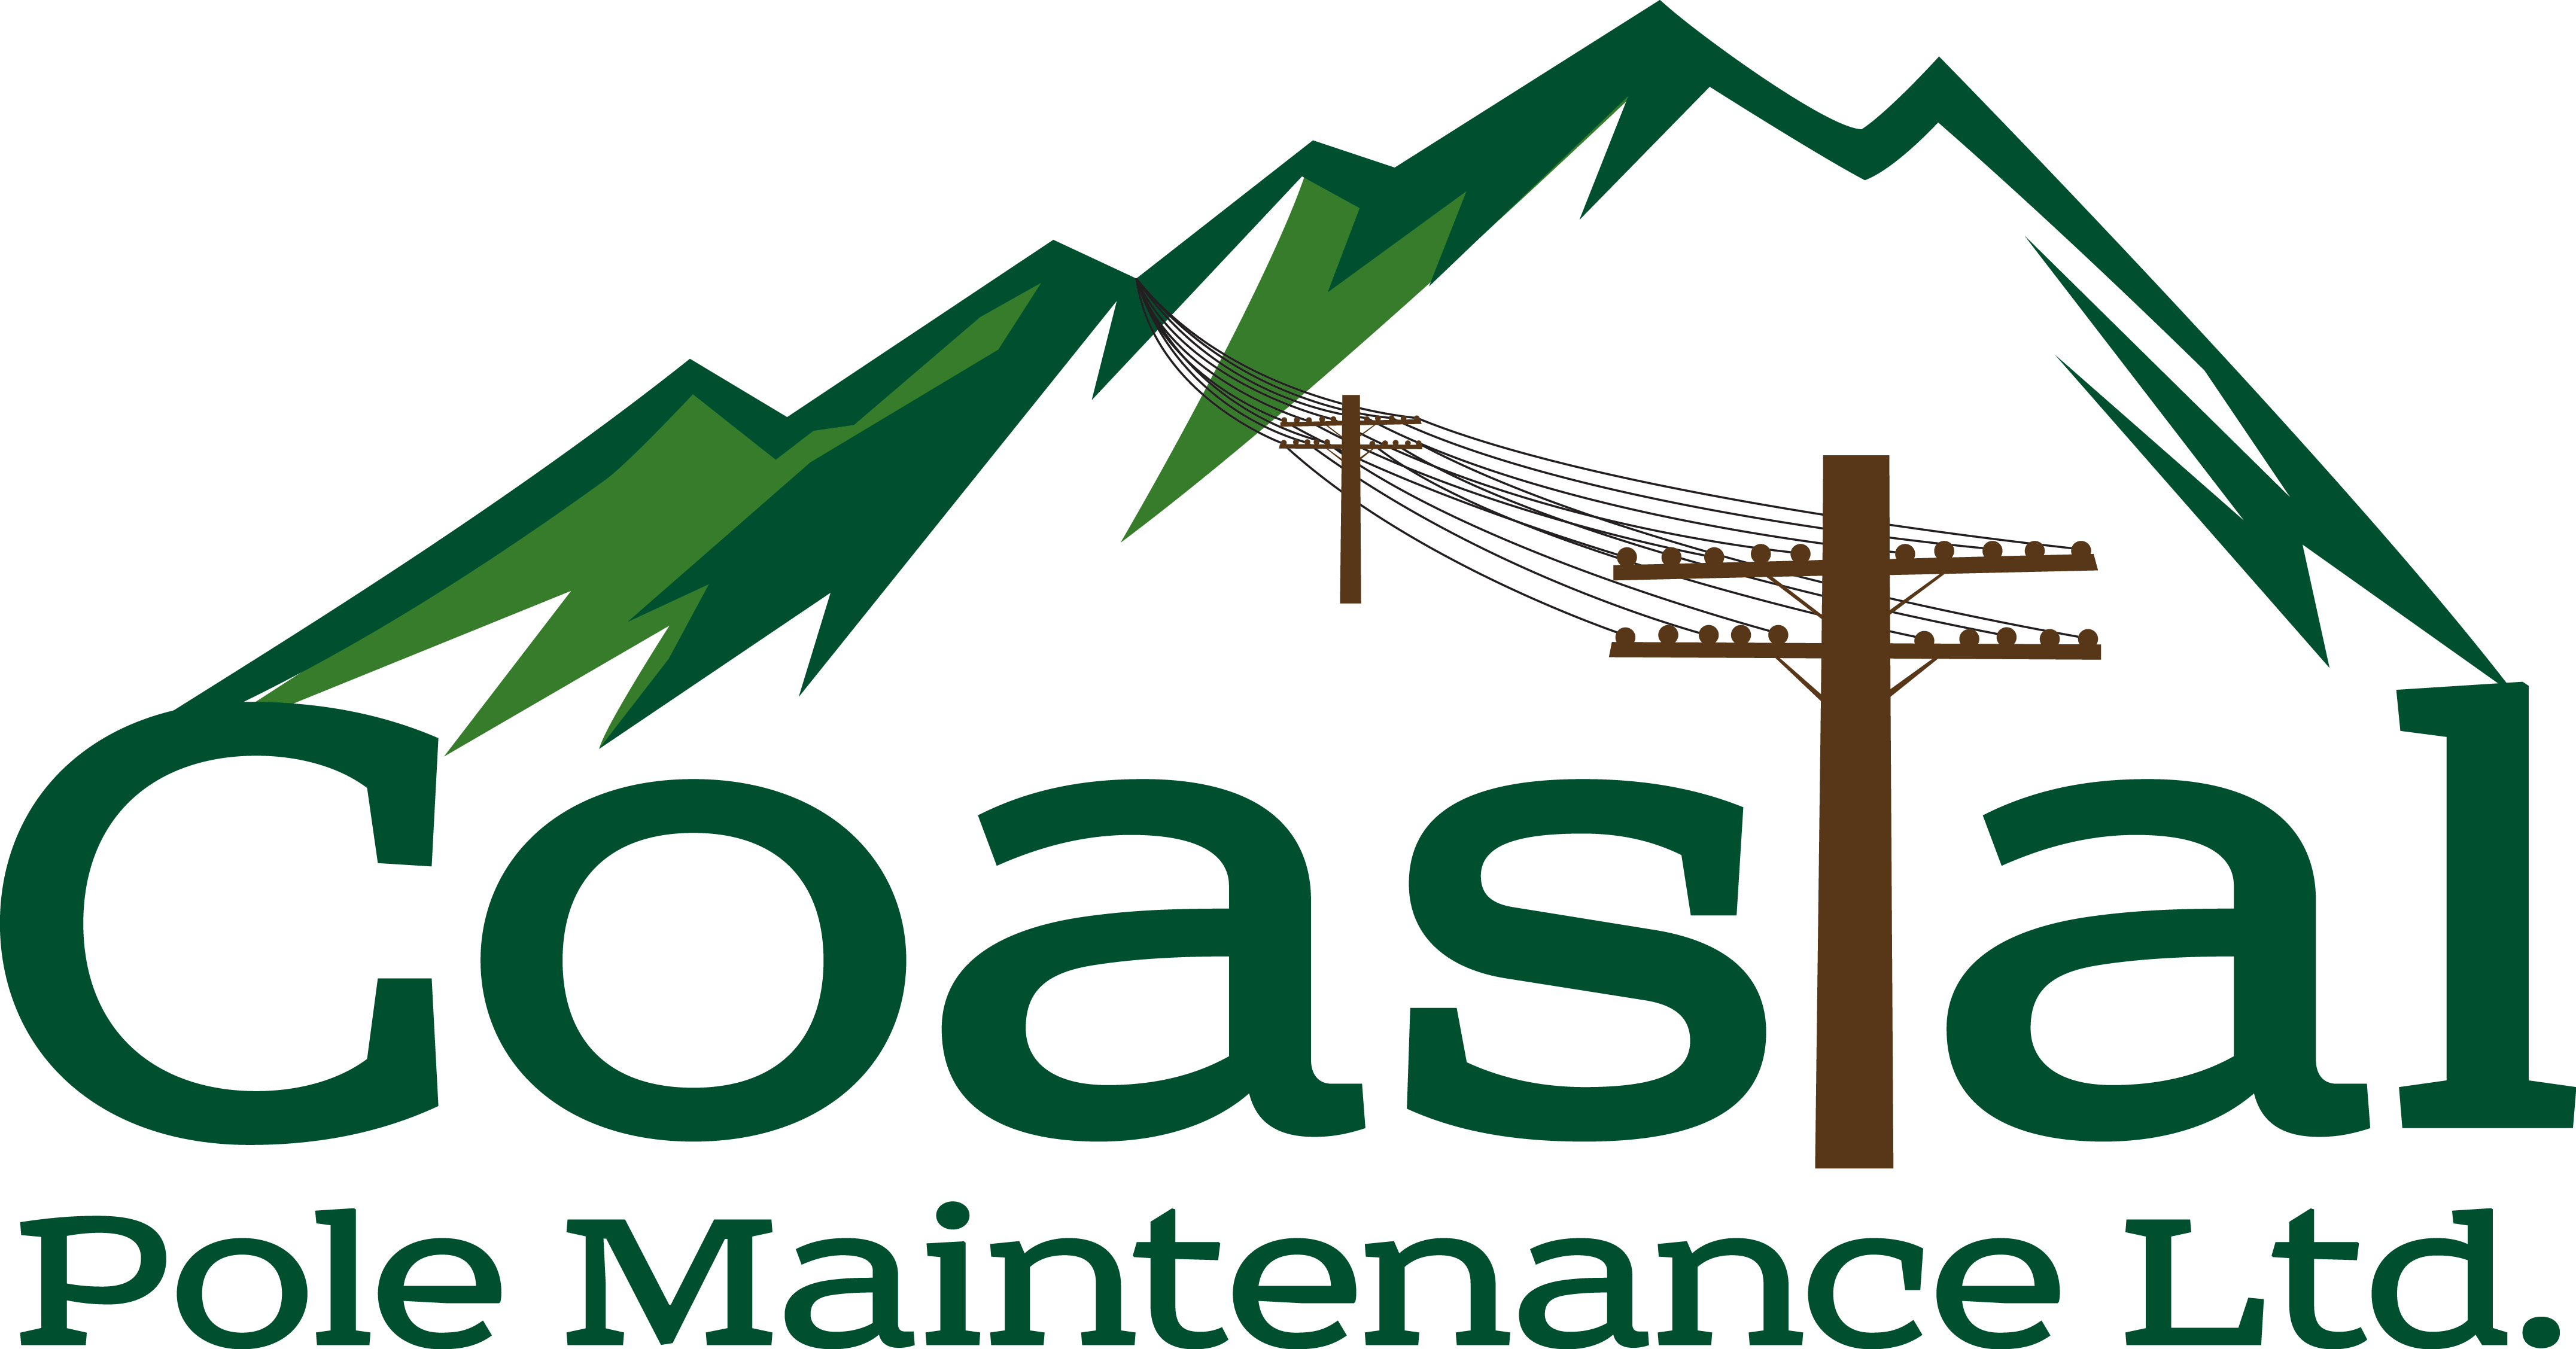 Coastal Pole Maintenance Logo FINAL